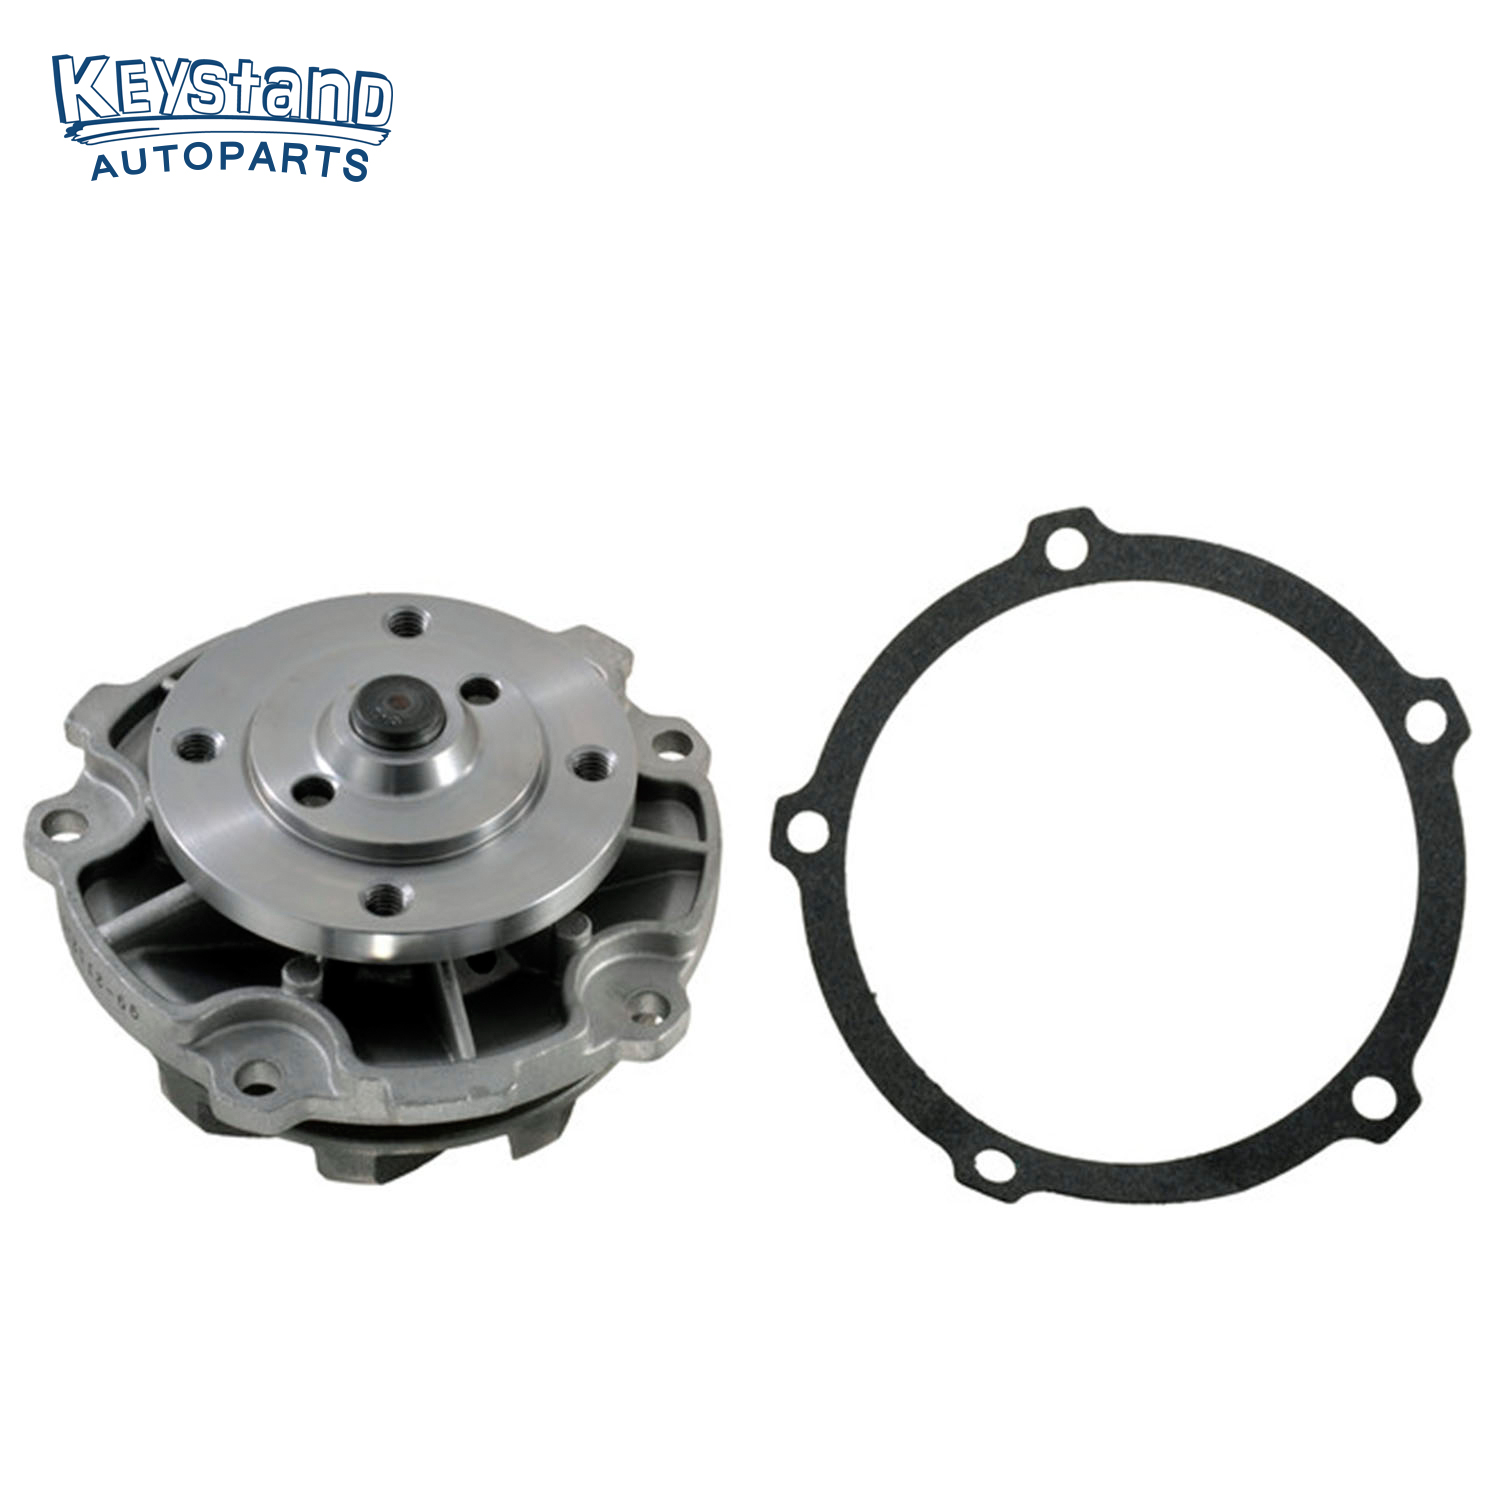 Oil Pump Fit for Buick 3.1l 3.4l 3.5l Chevrolet Oldsmobile 3.1l GMC 2.8l Isuzu Pontiac 3.1l Saturn 3.5l V6 OHV